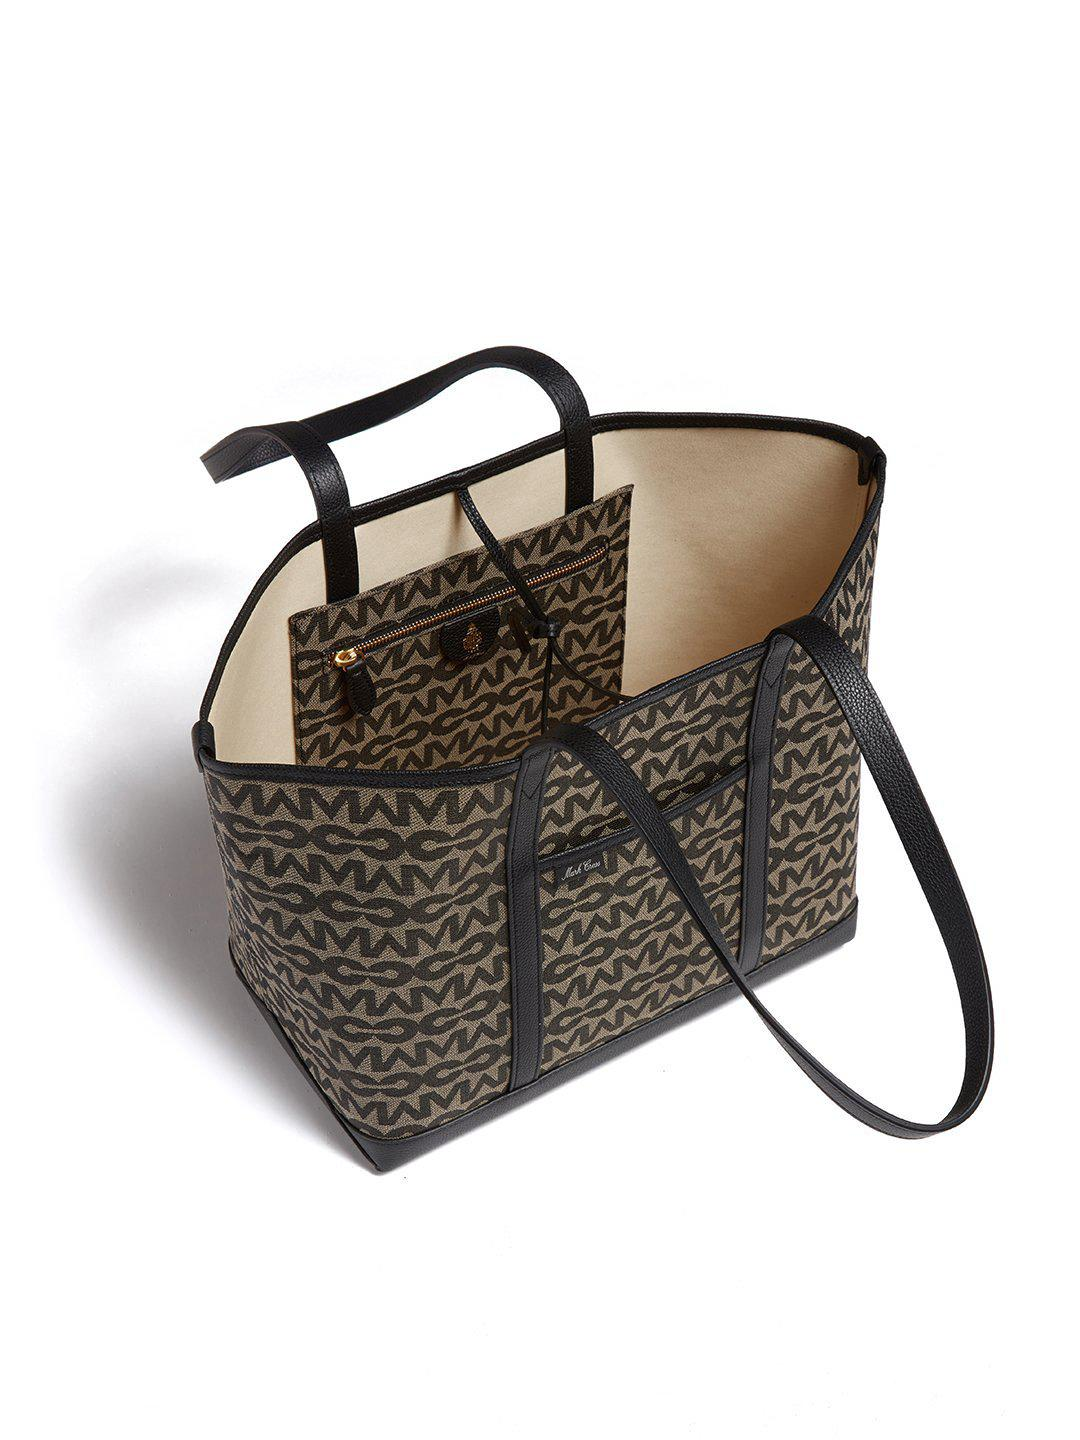 The Essentials Upcycled MC Jacquard & Leather Tote Bag 5